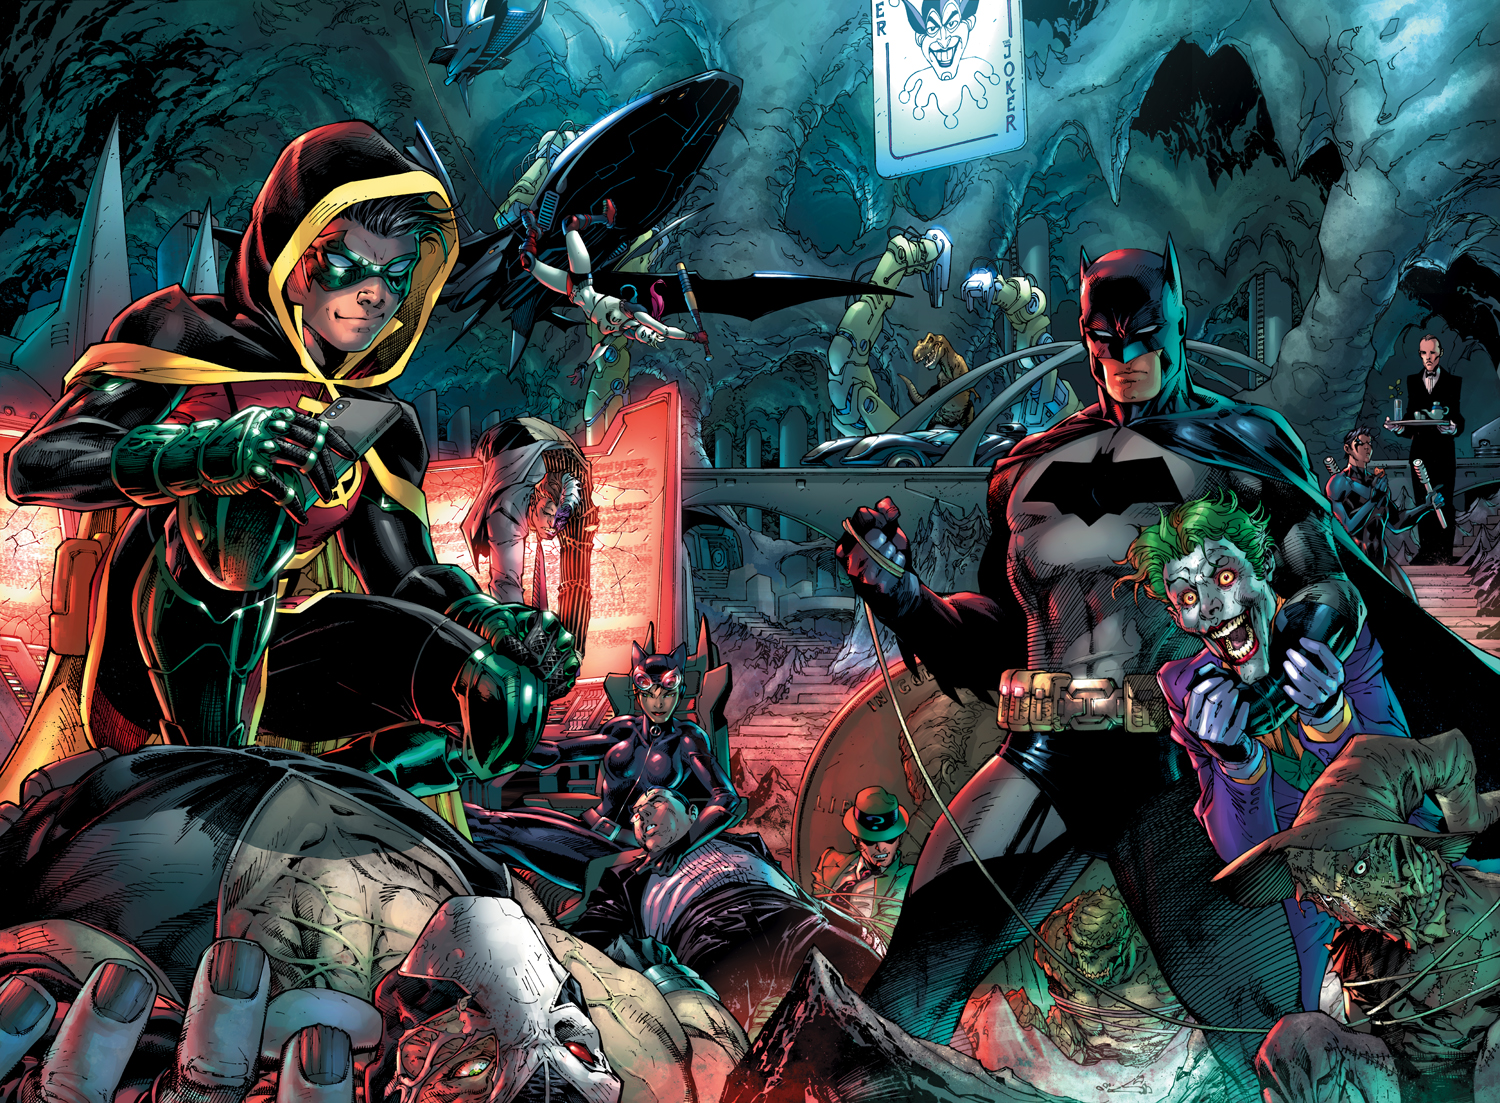 Detective Comics 1000 fine art limited edition giclee on paper by Jim Lee